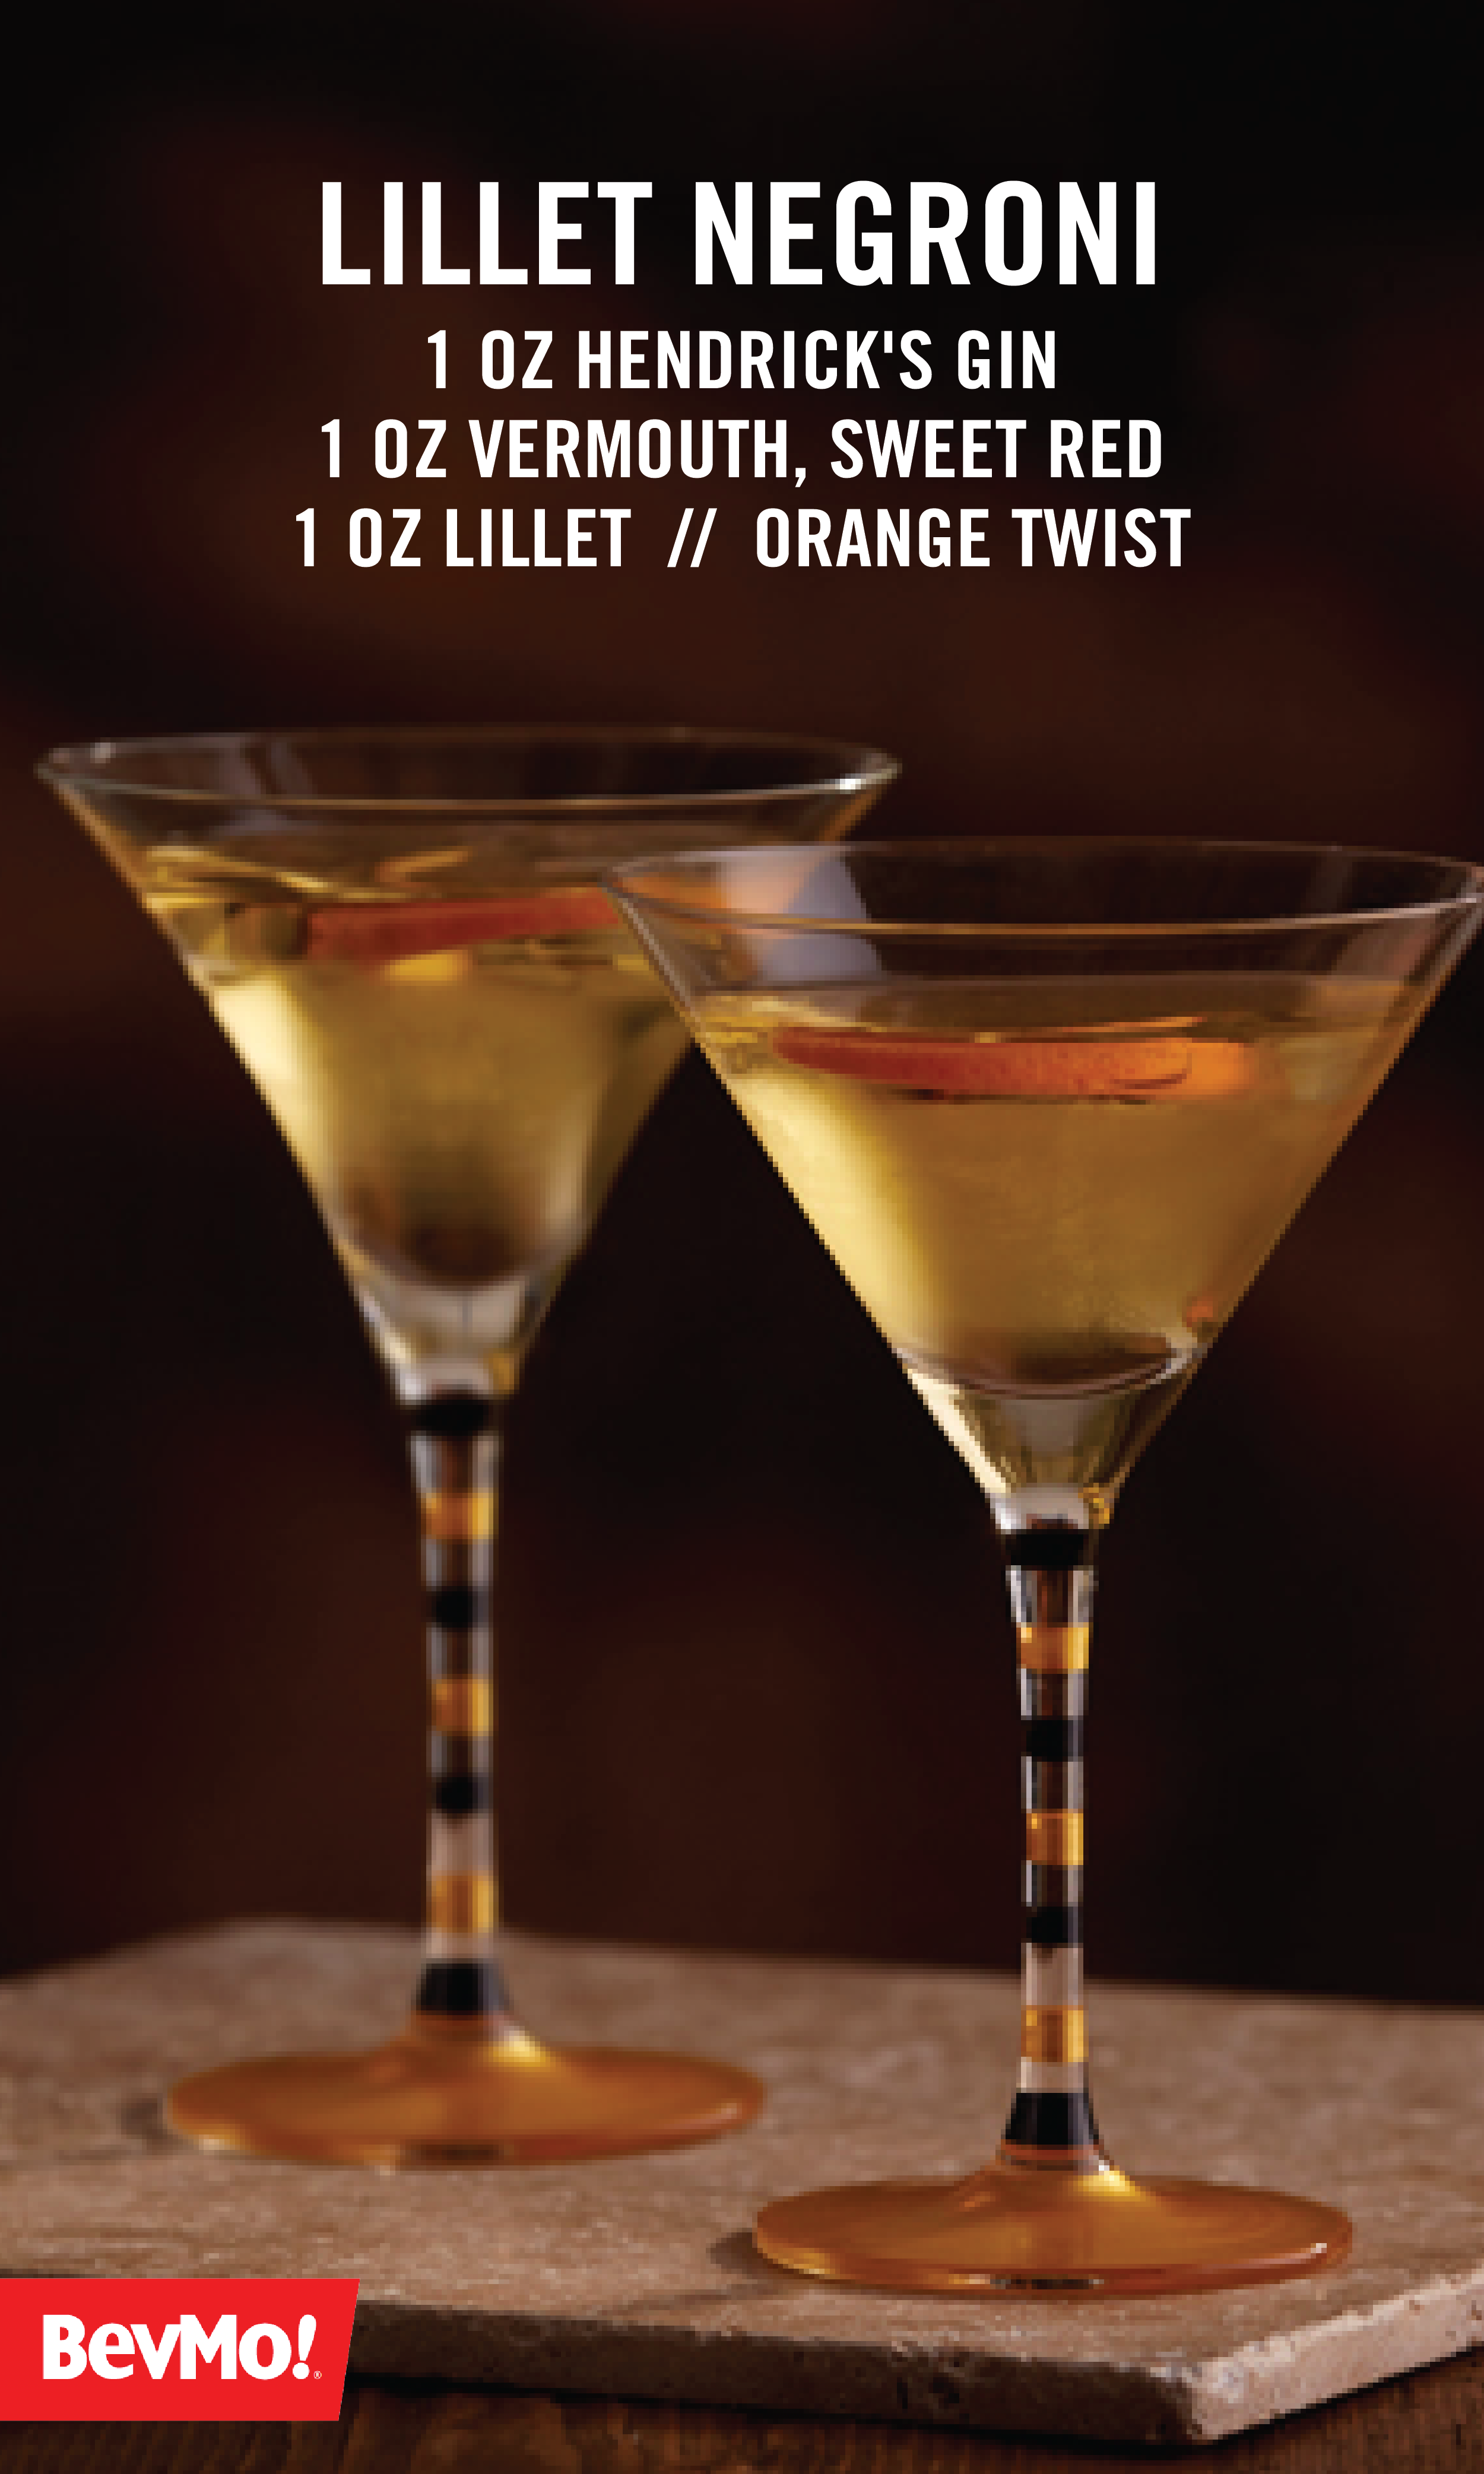 Lillet Negroni   Gin Recipes! in 2019   Restaurant drinks